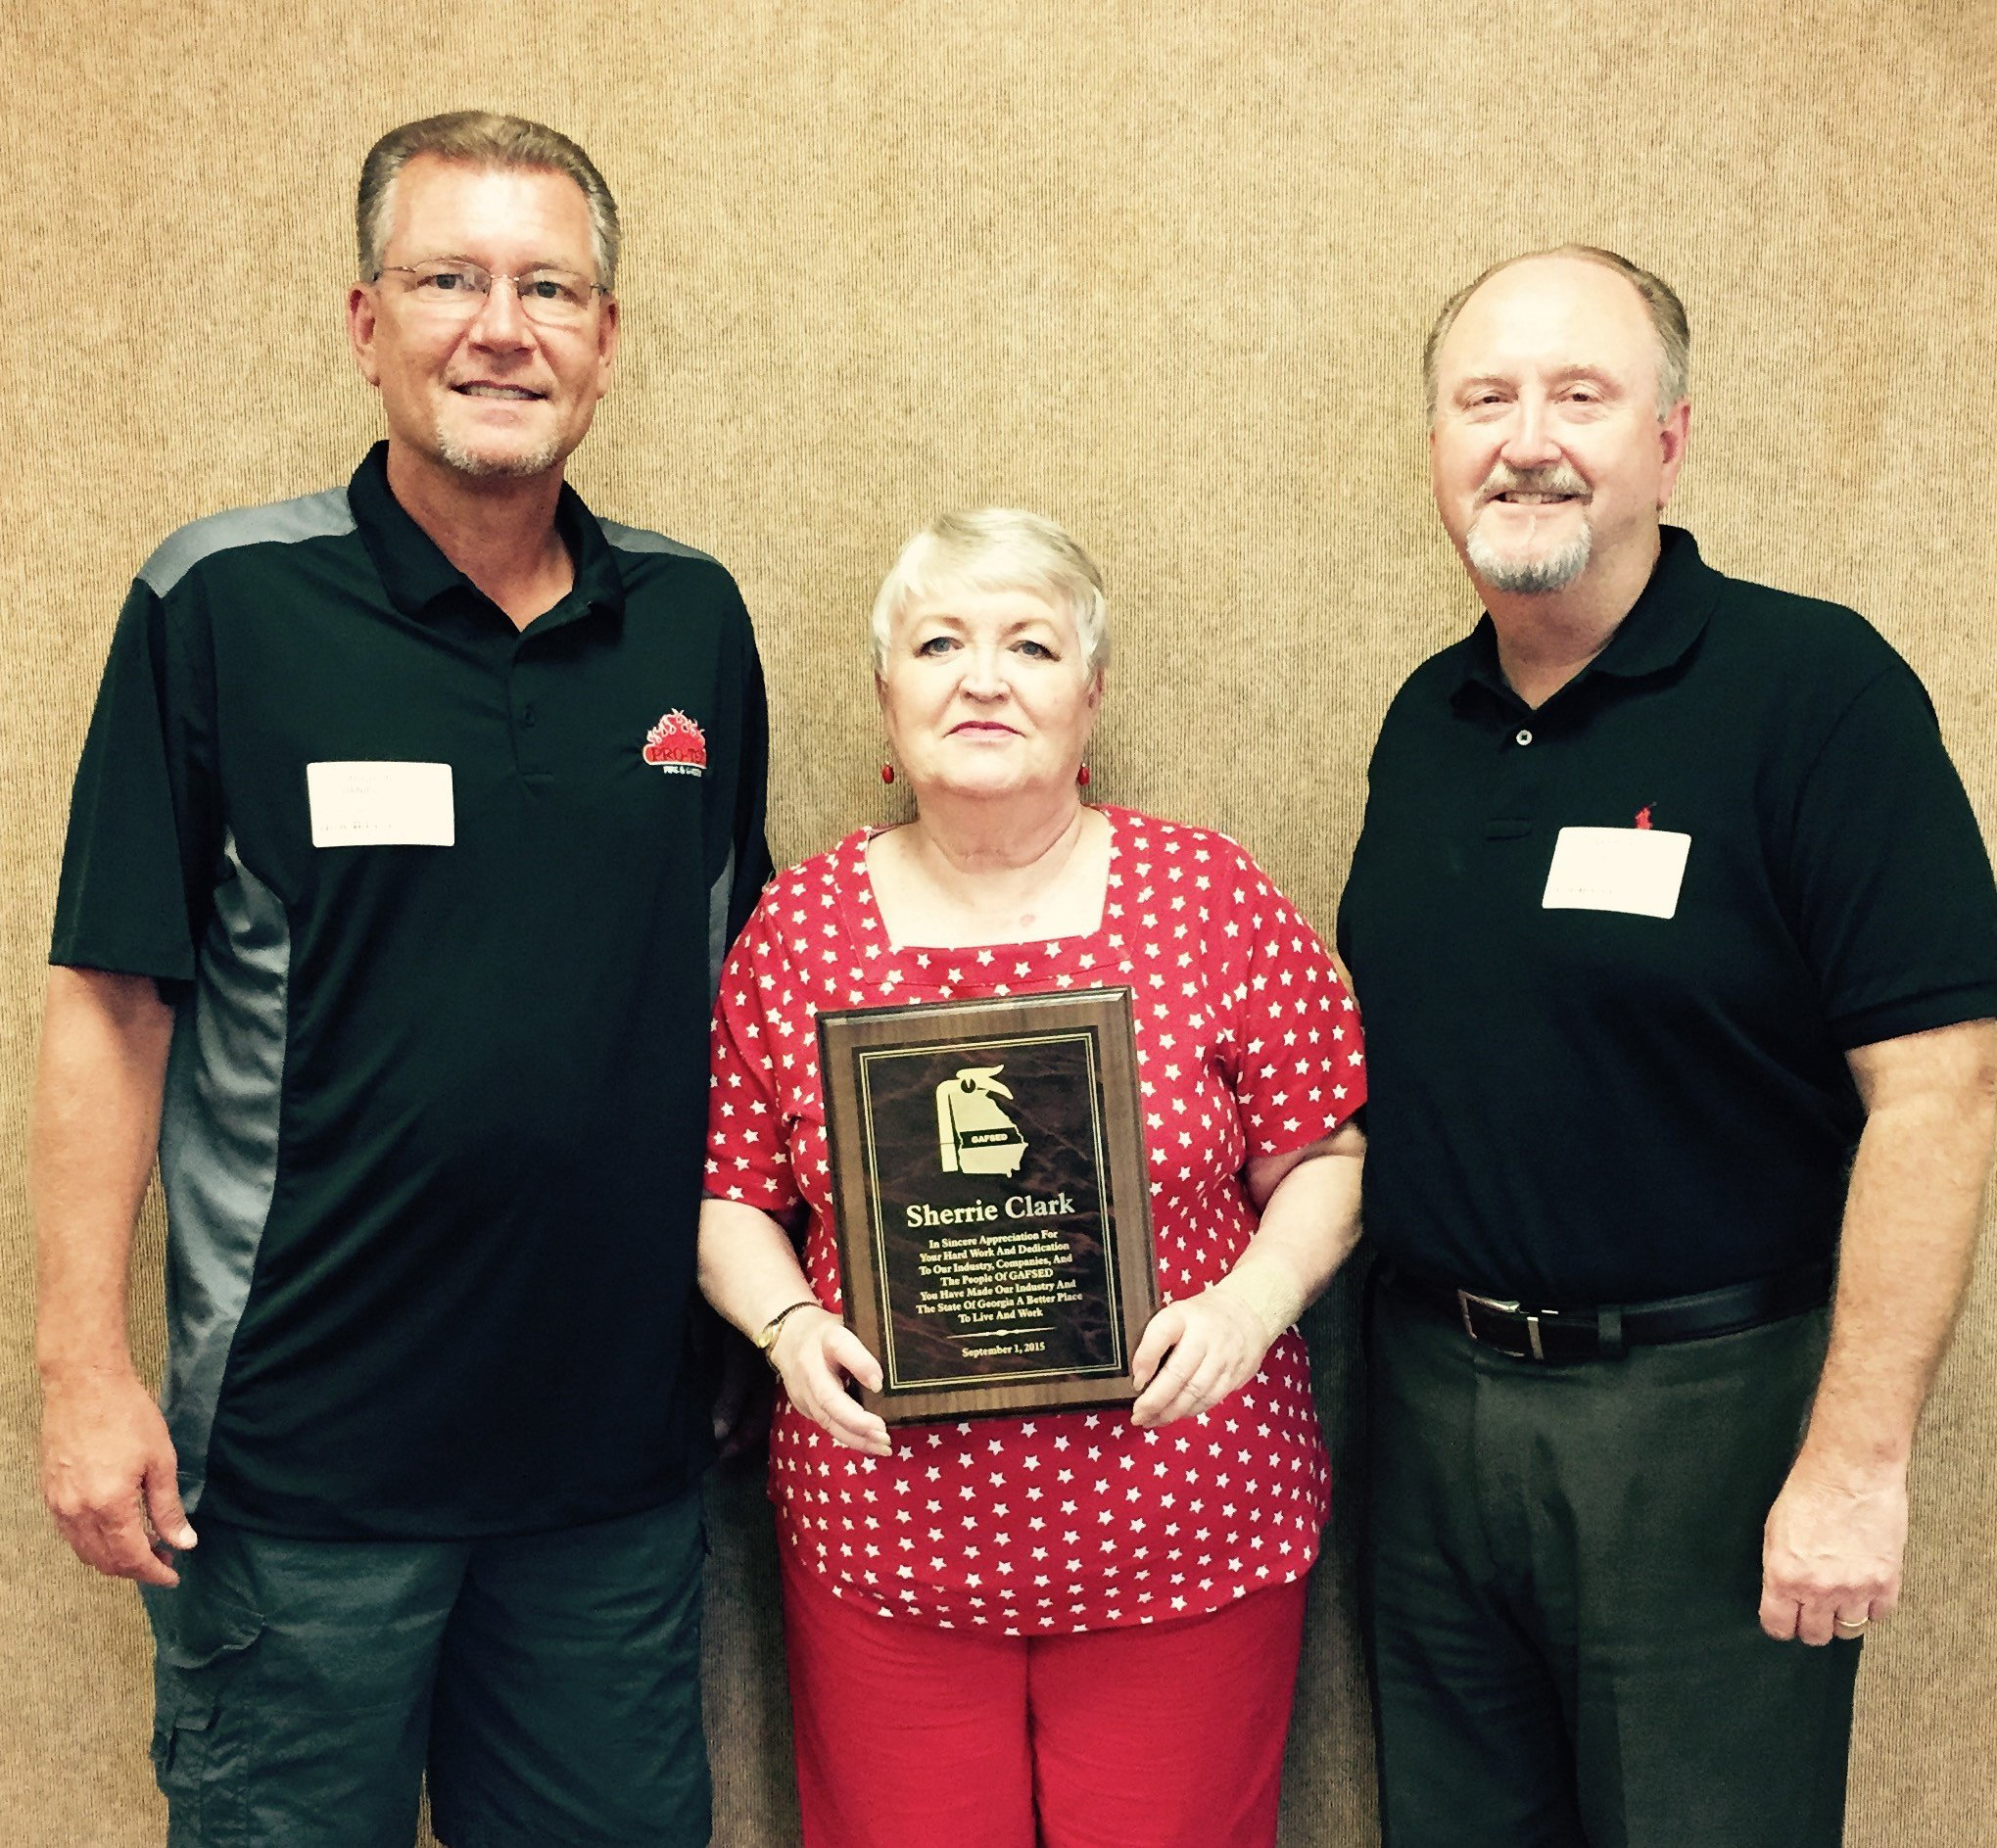 Sherrie Clark  In sincere appreciation for your hard work and dedication to our industry.